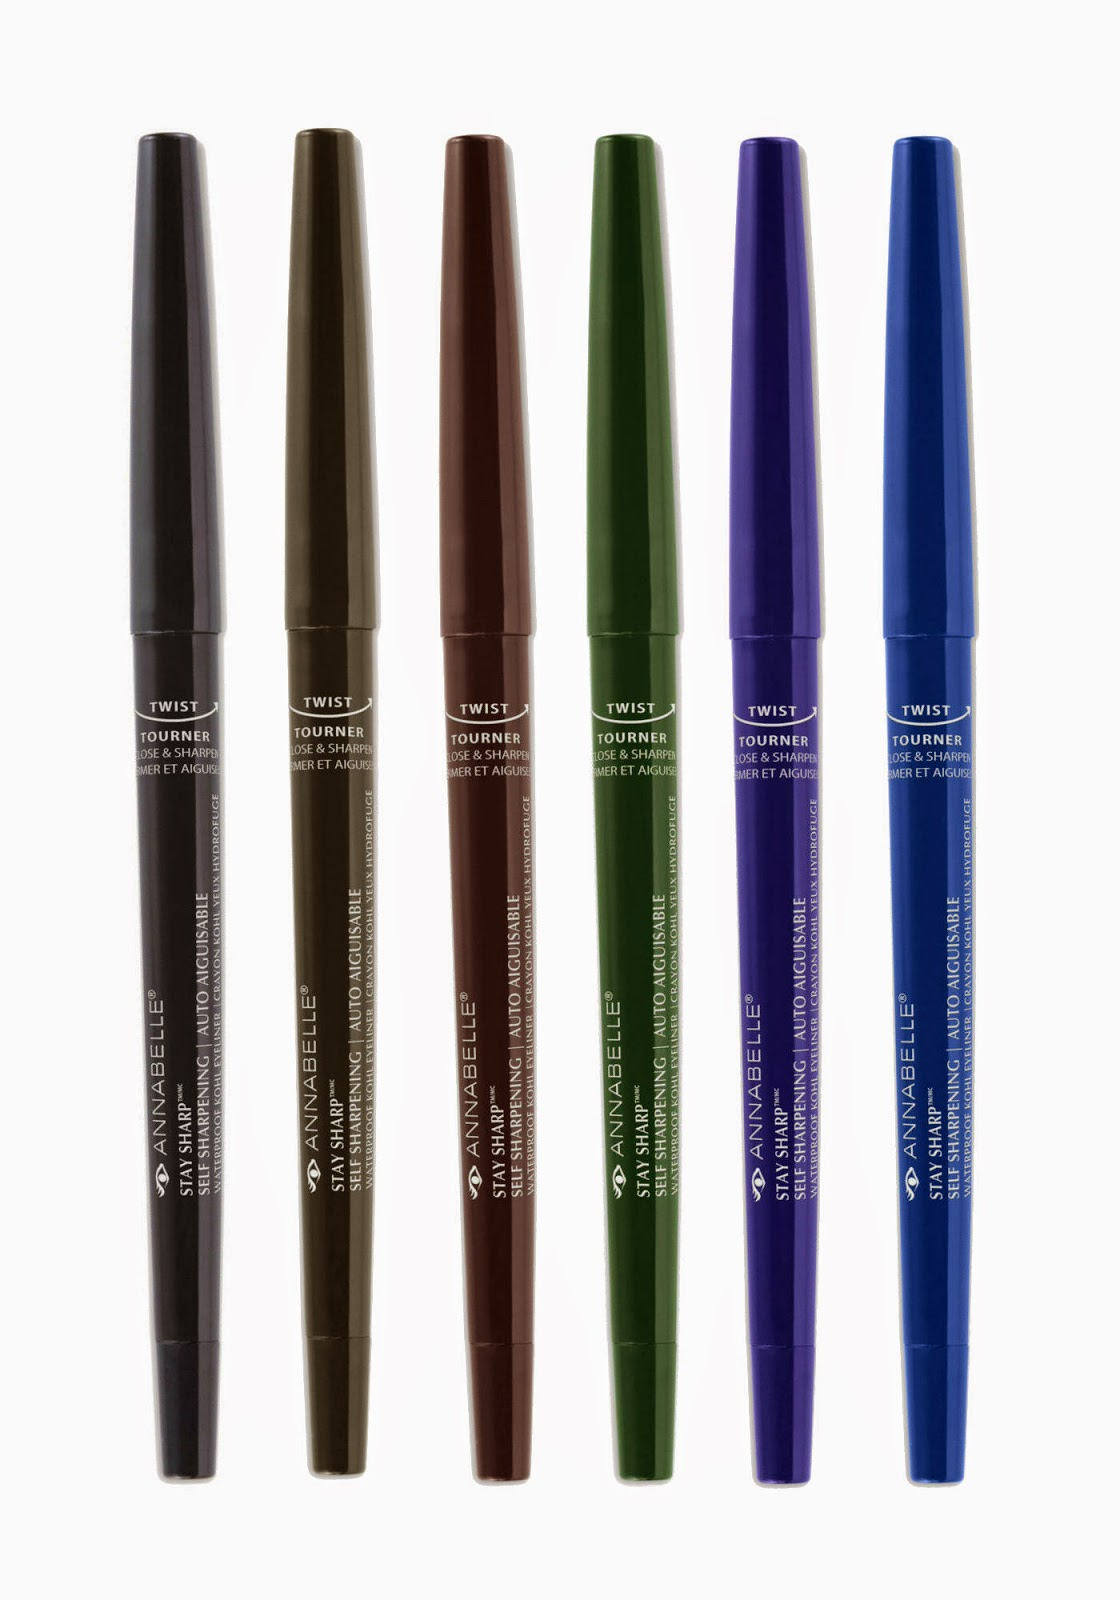 Annabelle Cosmetics Stay Sharp Waterproof Kohl Eyeliner in Go Black, Graphite, Cappuccino, Forest, Ultraviolet, Midnight